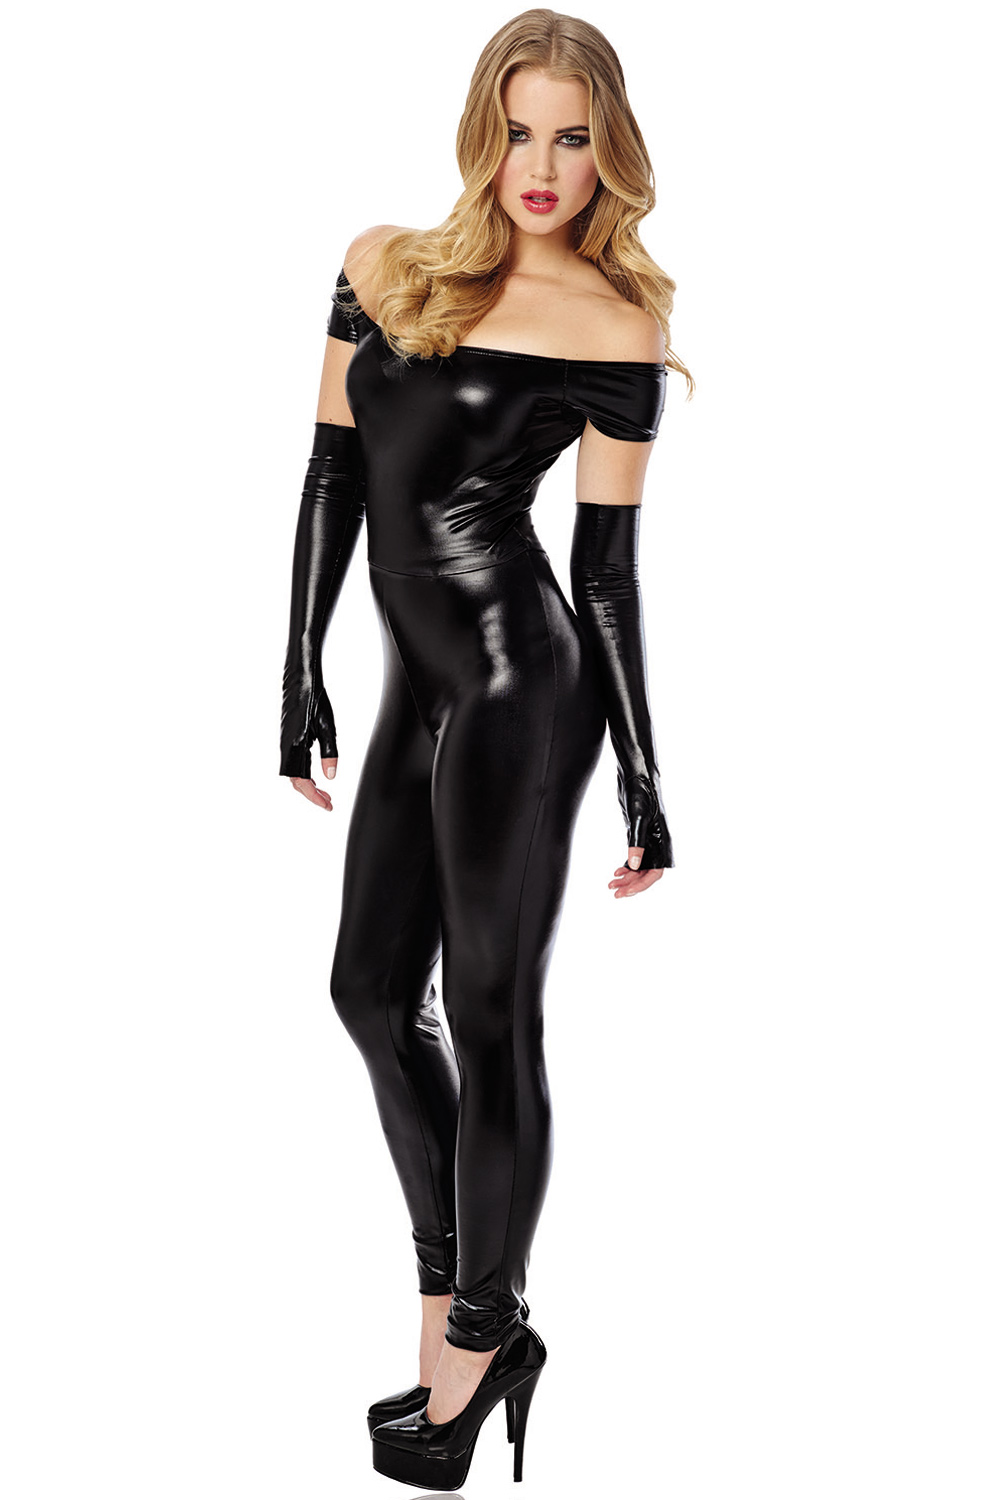 All Black Costumes For Kids